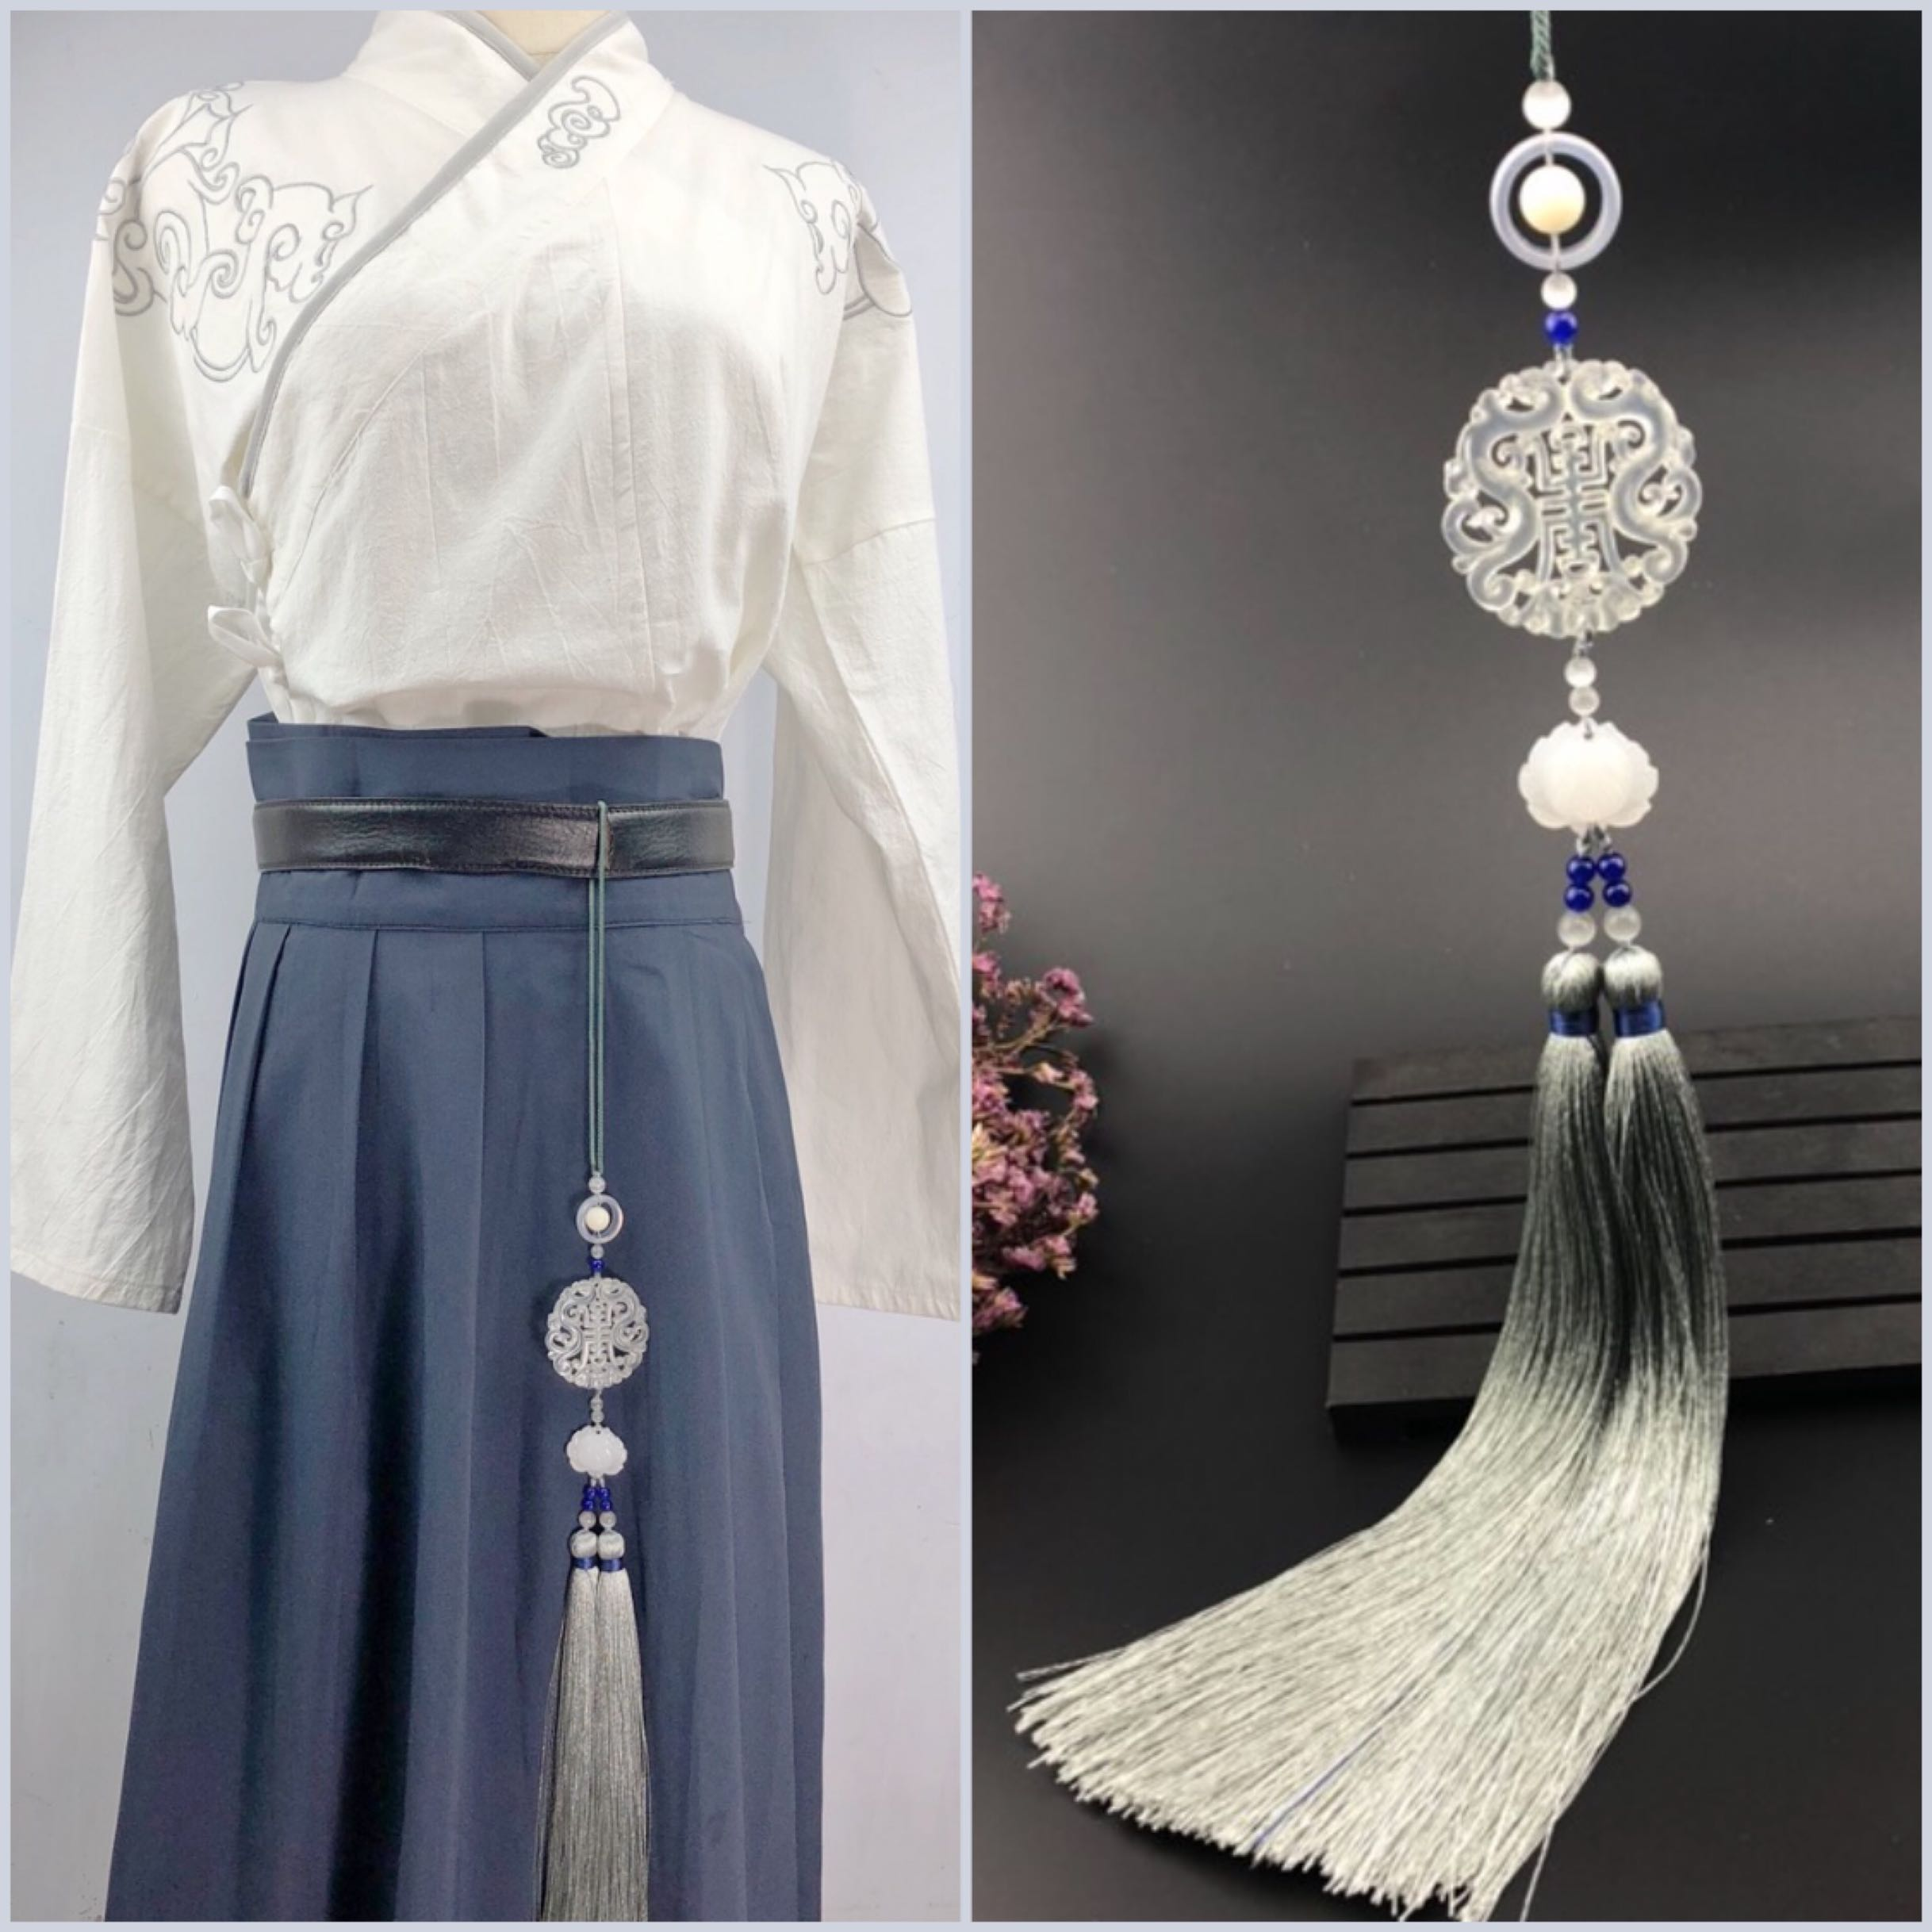 The ancient style Han clothing jade Pai Lusu waist Pe ancient dress forbidden waist accessories Chinese-style pressure couple love letter props